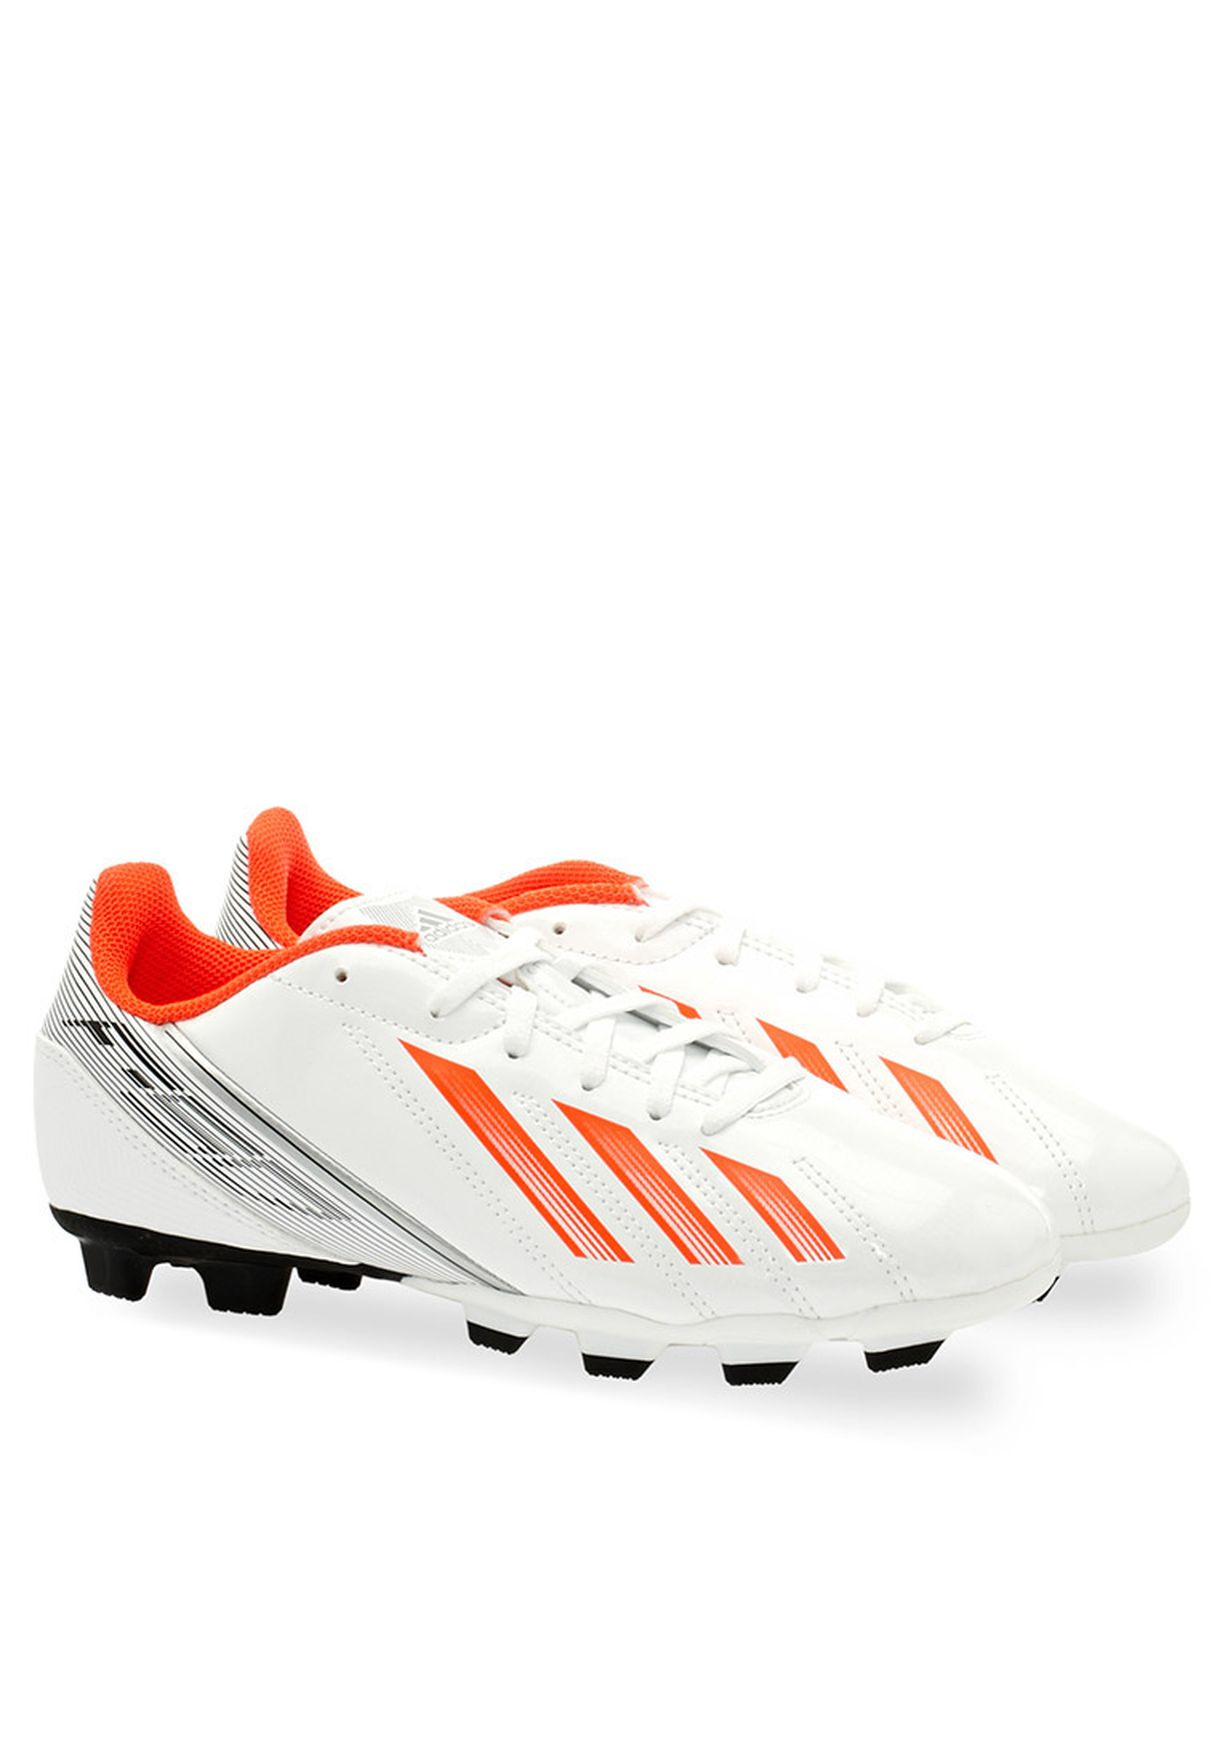 b36a5476ac2 Shop adidas white F5 TRX FG FB Boots M22370 for Kids in Kuwait ...